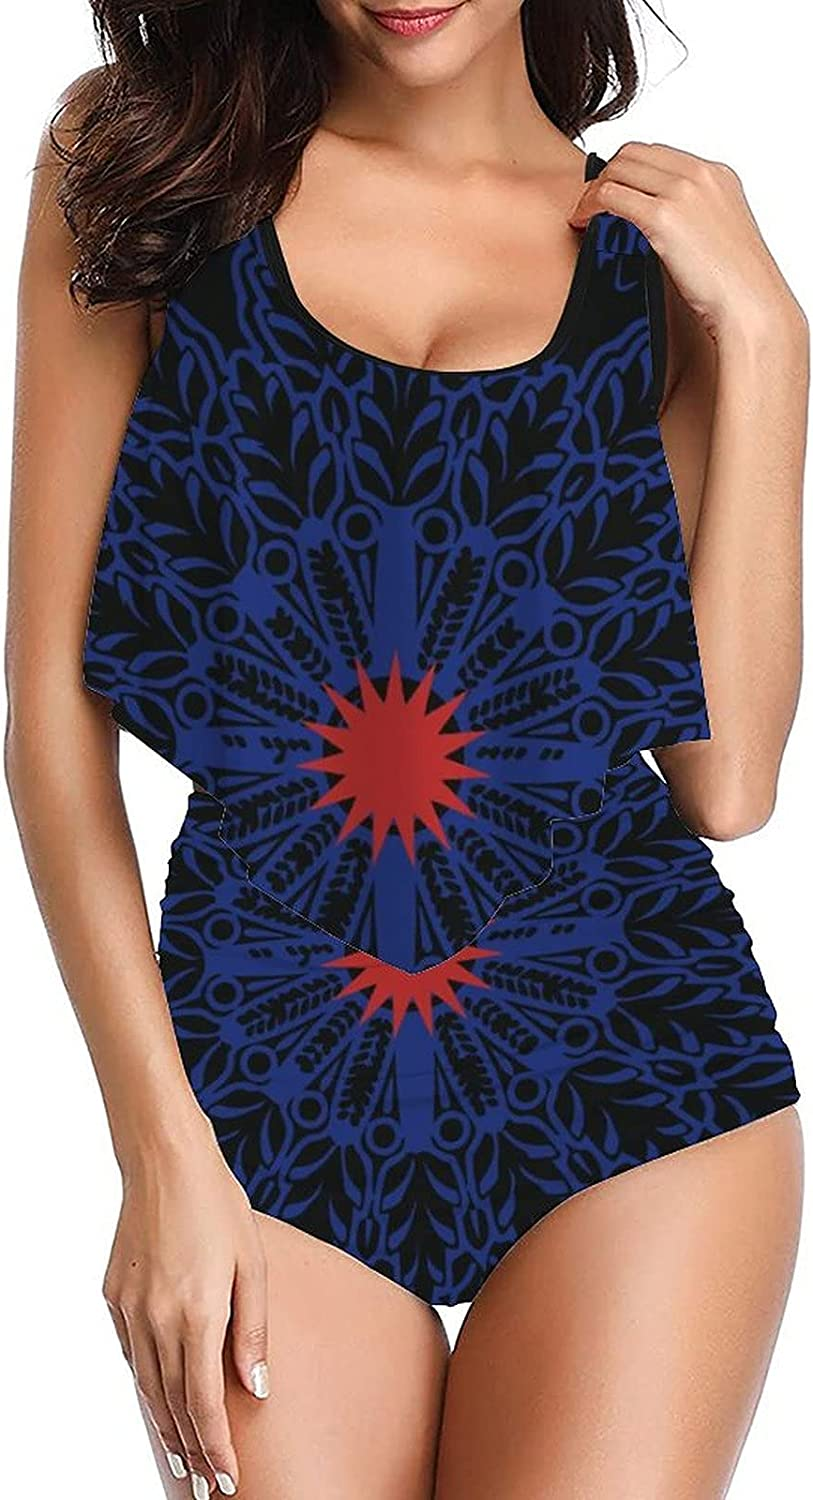 Women's Decorative Pattern-4 Swimsuit Design Tankini top with High Waisted Bottom Bikini Set Two Pieces Bathing Suits